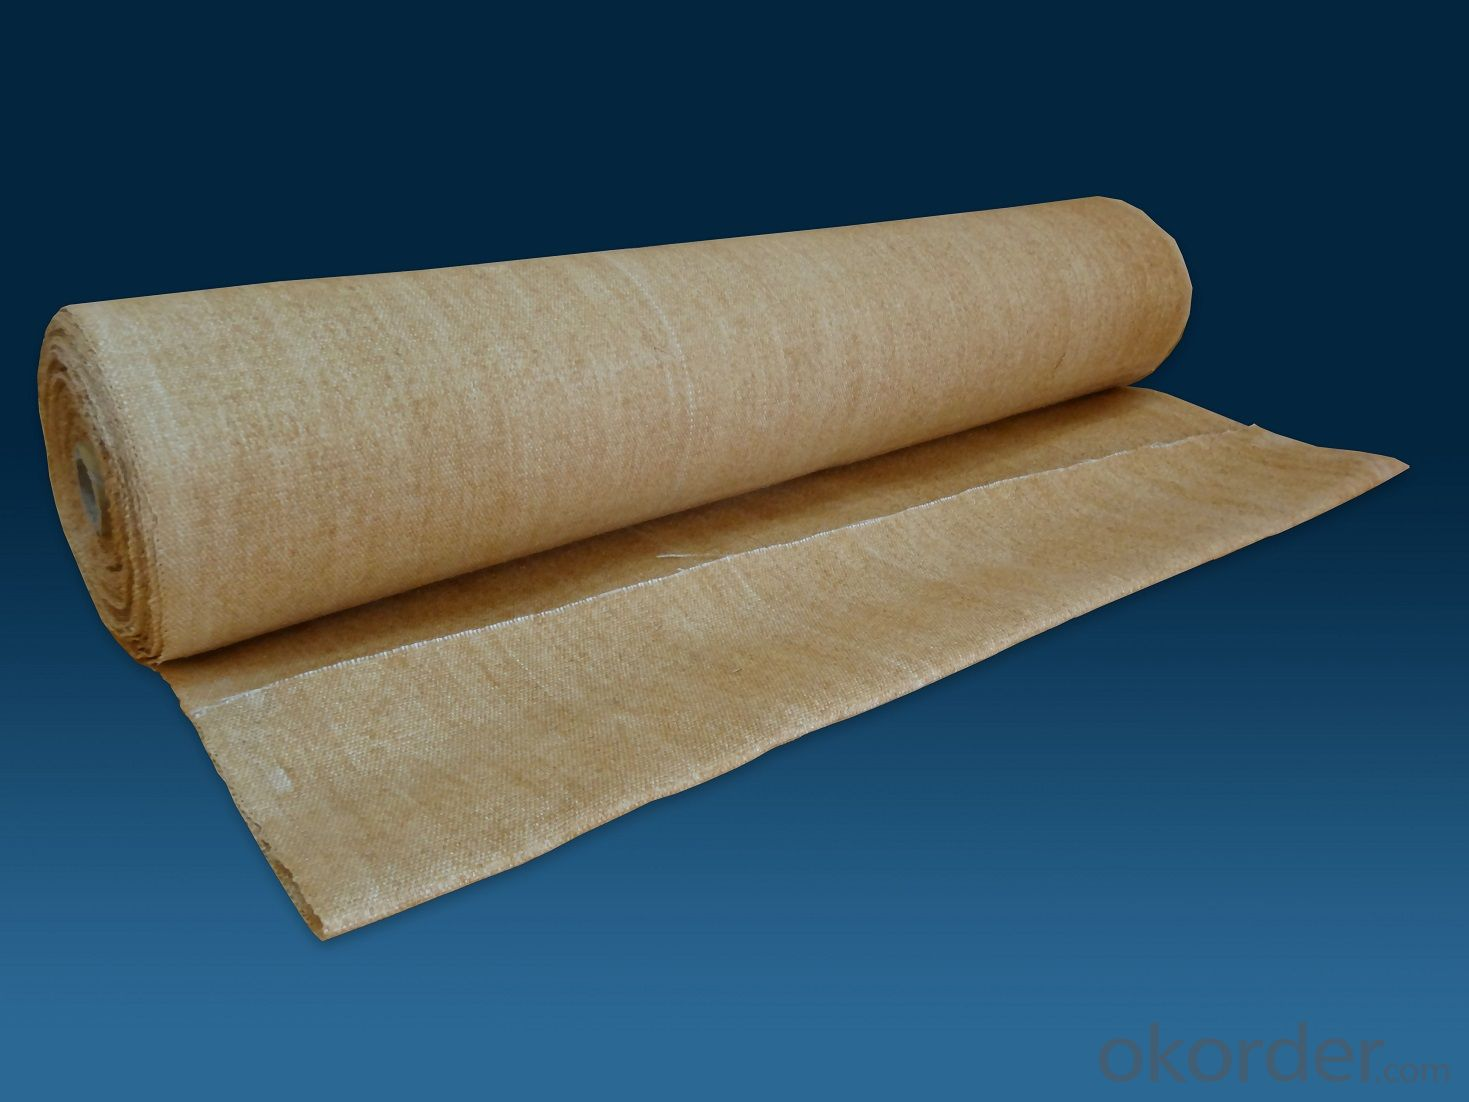 Buy fiberglass cloth with vermiculite coated Price,Size,Weight,Model